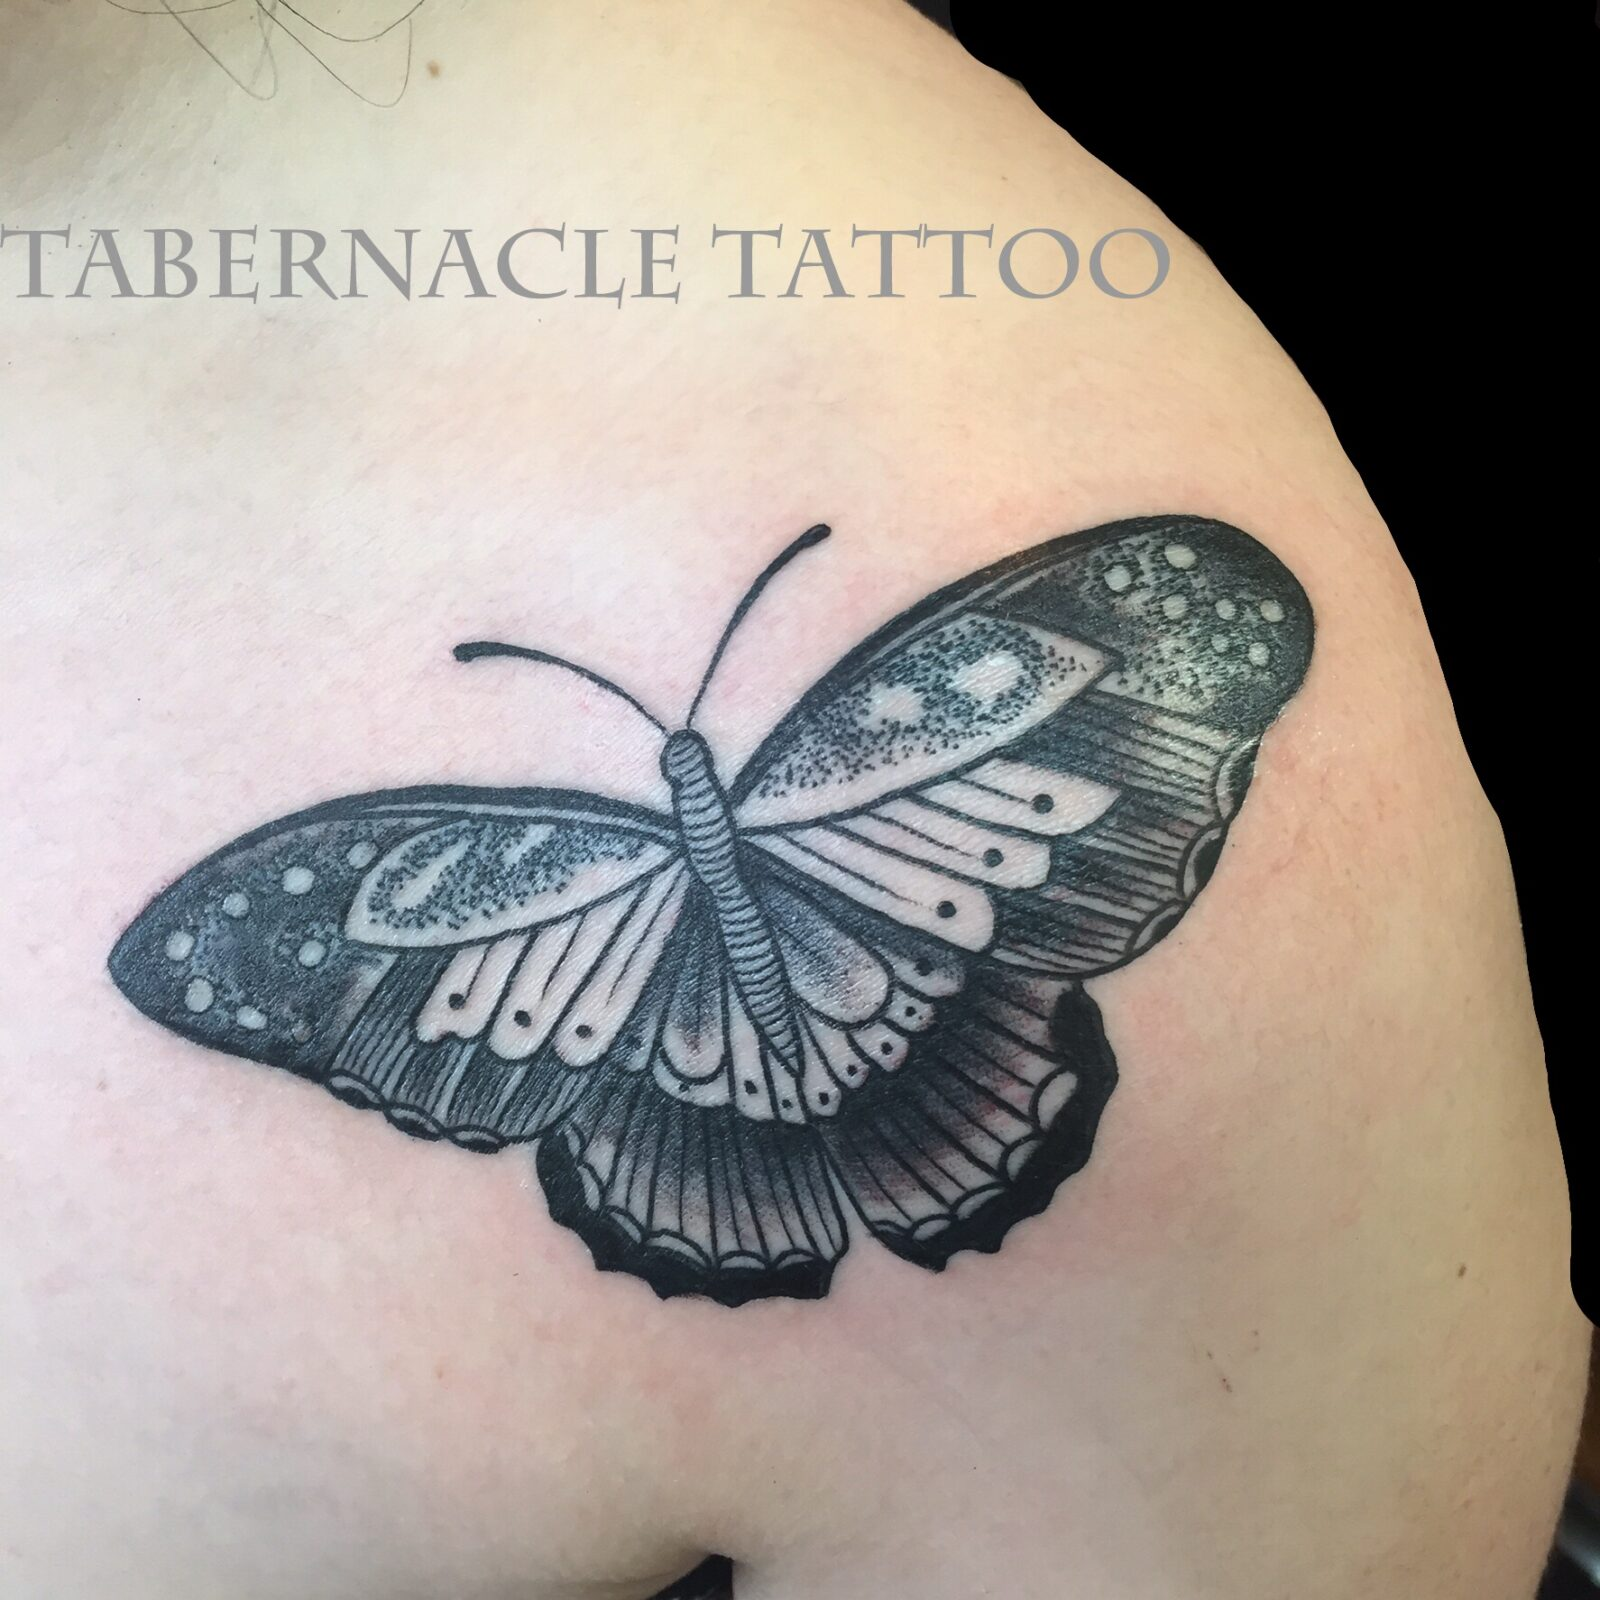 Best Tampa Bay Area Tattoo Artist Tabernacle Tattoo Ideas And Designs